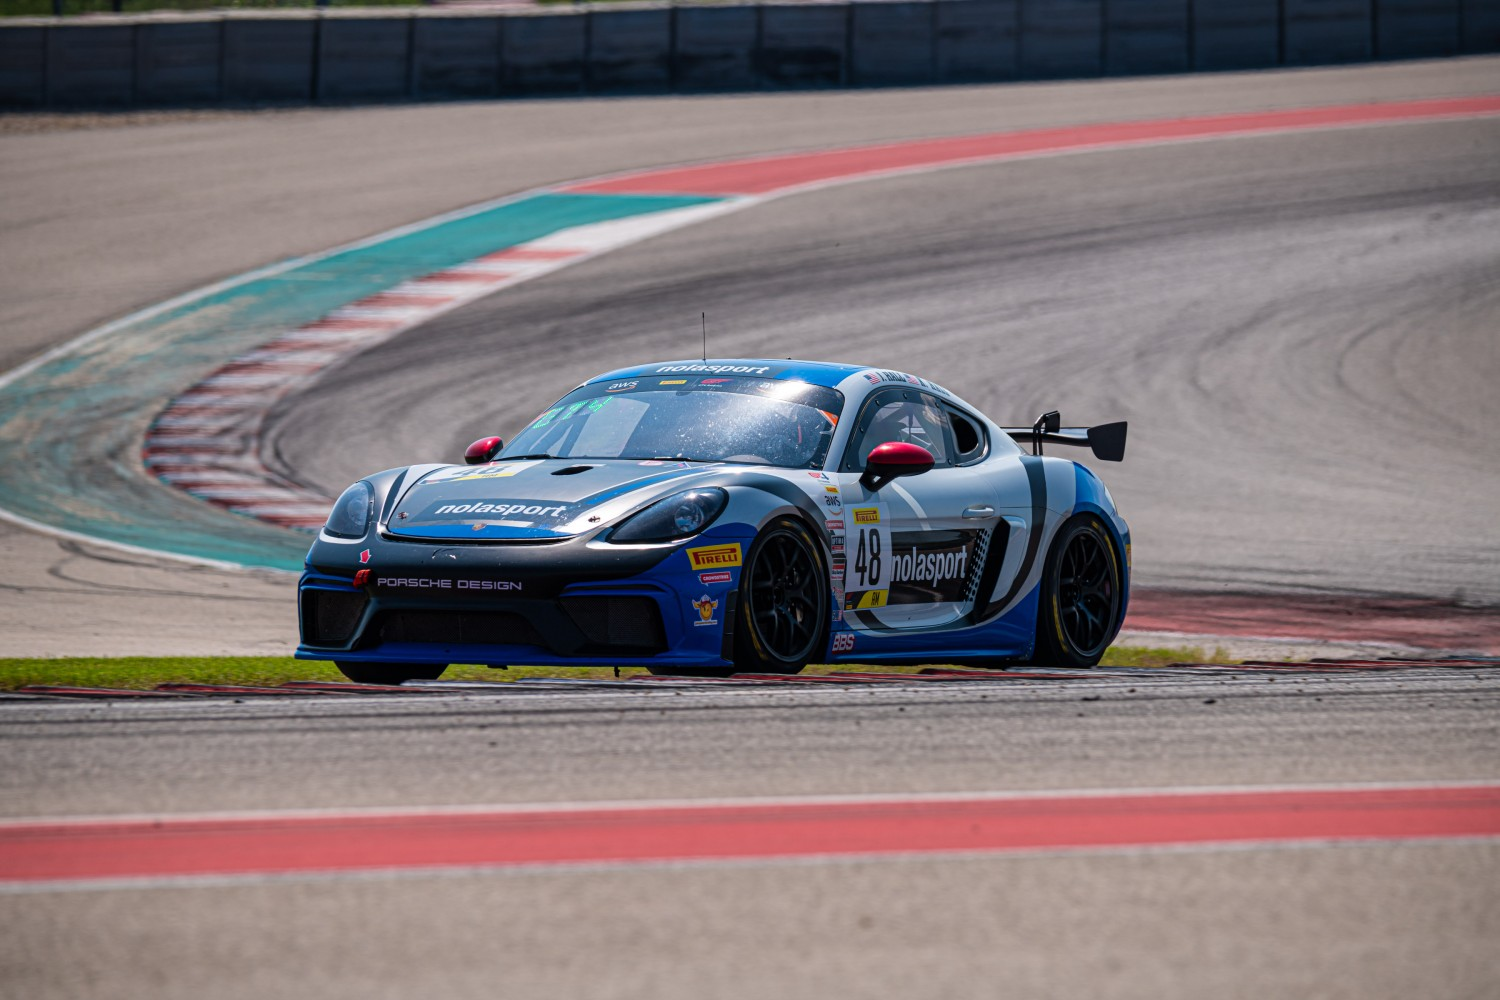 #48 Porsche 718 Cayman GT4 of Jason Hall, NOLASPORT, GT 4 Sprint Am, SRO America, Circuit of the Americas, Austin TX, September 2020.  | SRO Motorsports Group